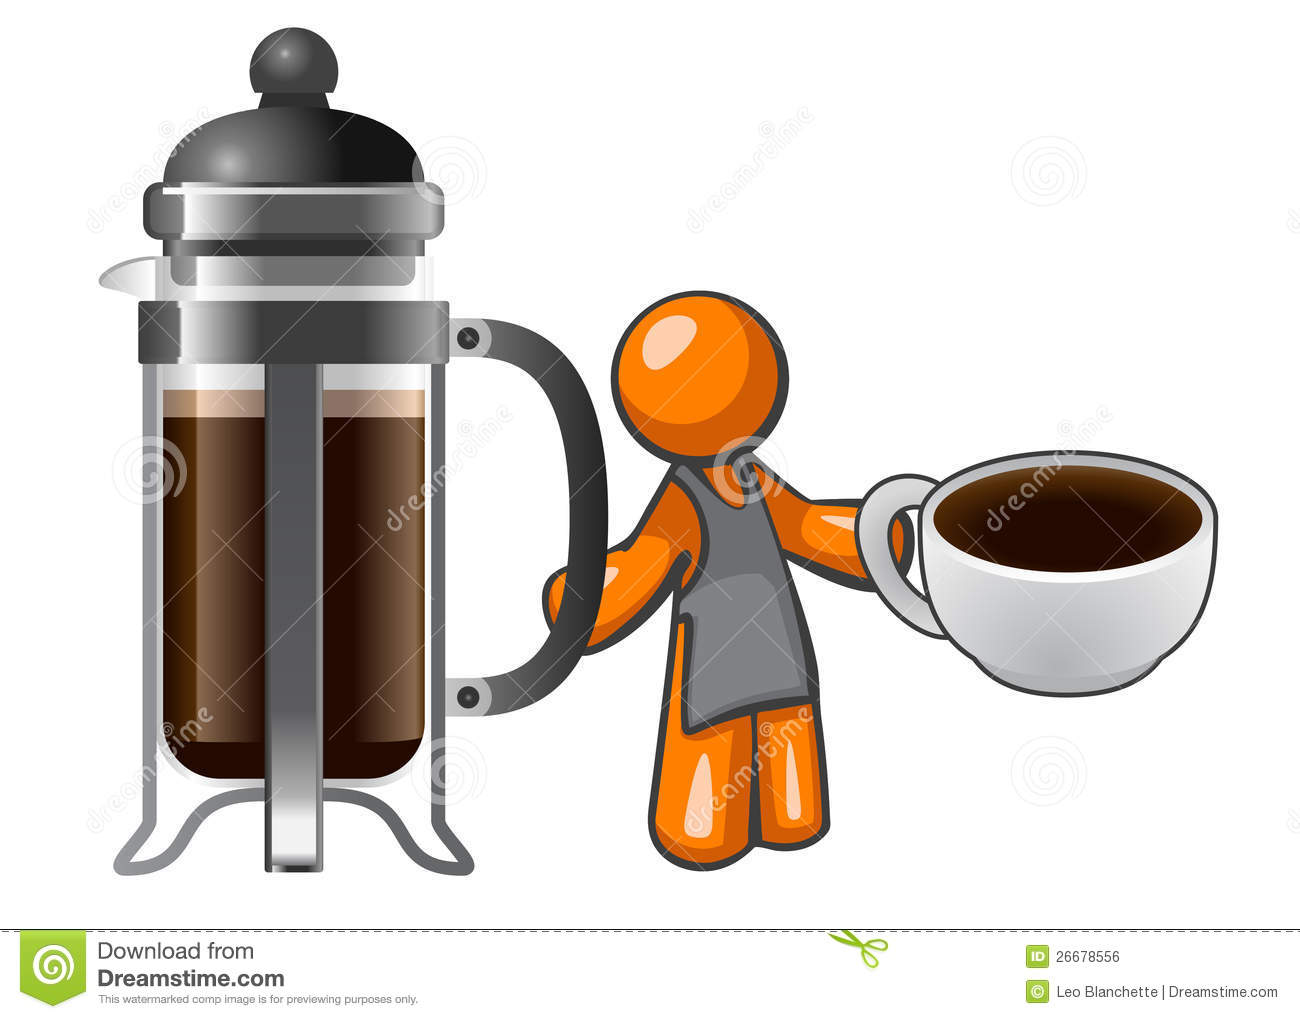 Leo French Press Coffee Maker : Orange Man With French Press And Coffee Cup Royalty Free Stock Image - Image: 26678556